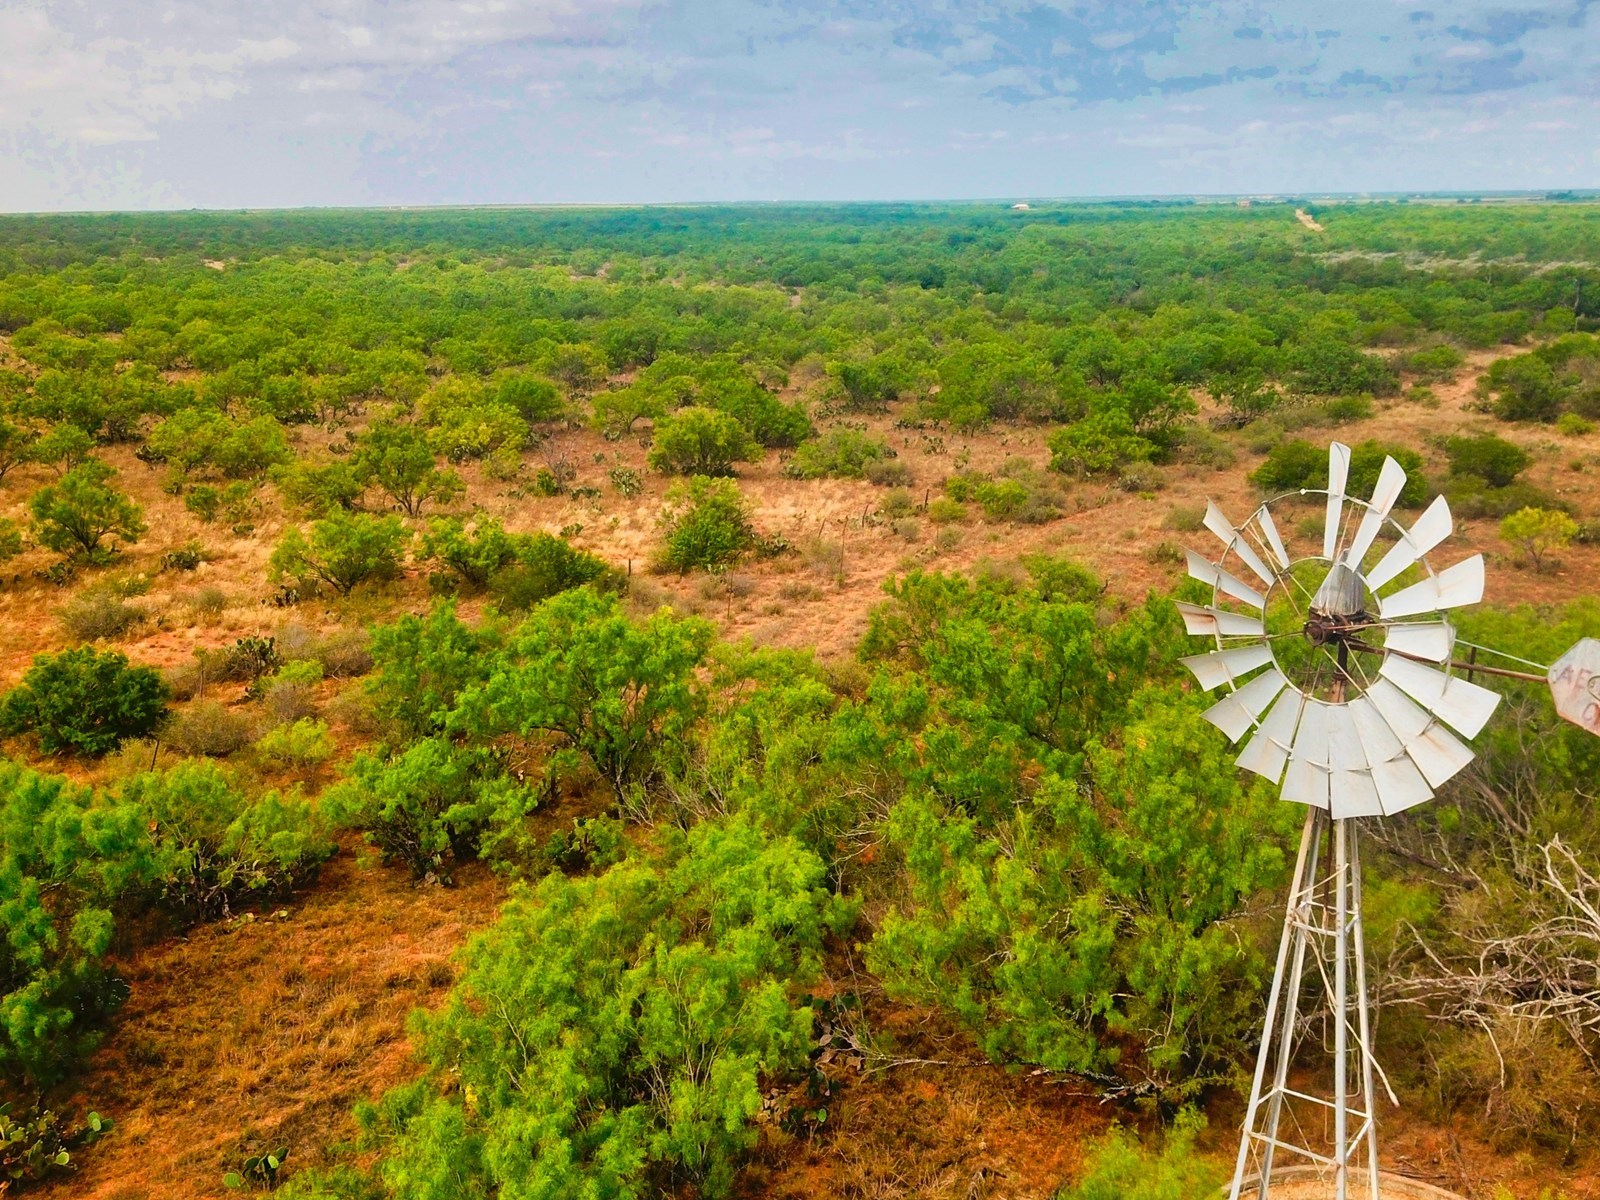 PRIME SOUTH TEXAS HUNTING RANCH